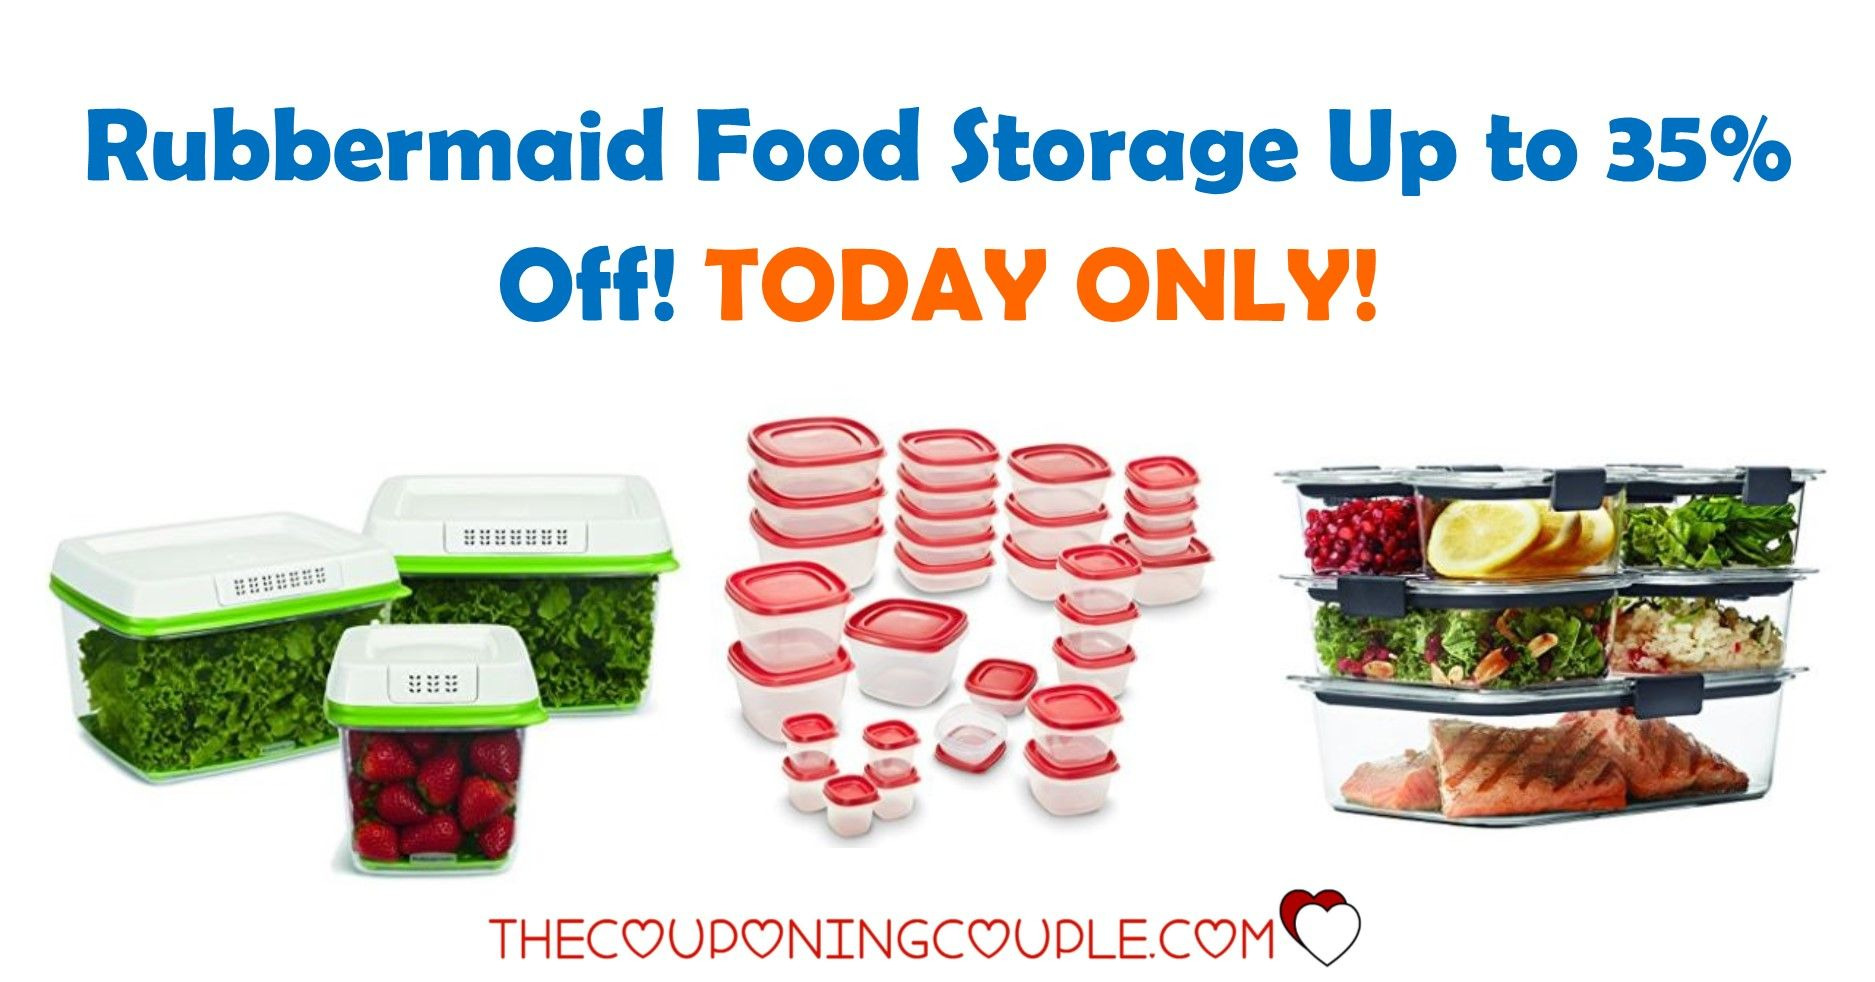 WOO HOO Rubbermaid Food Storage Up to 35 Off Food storage